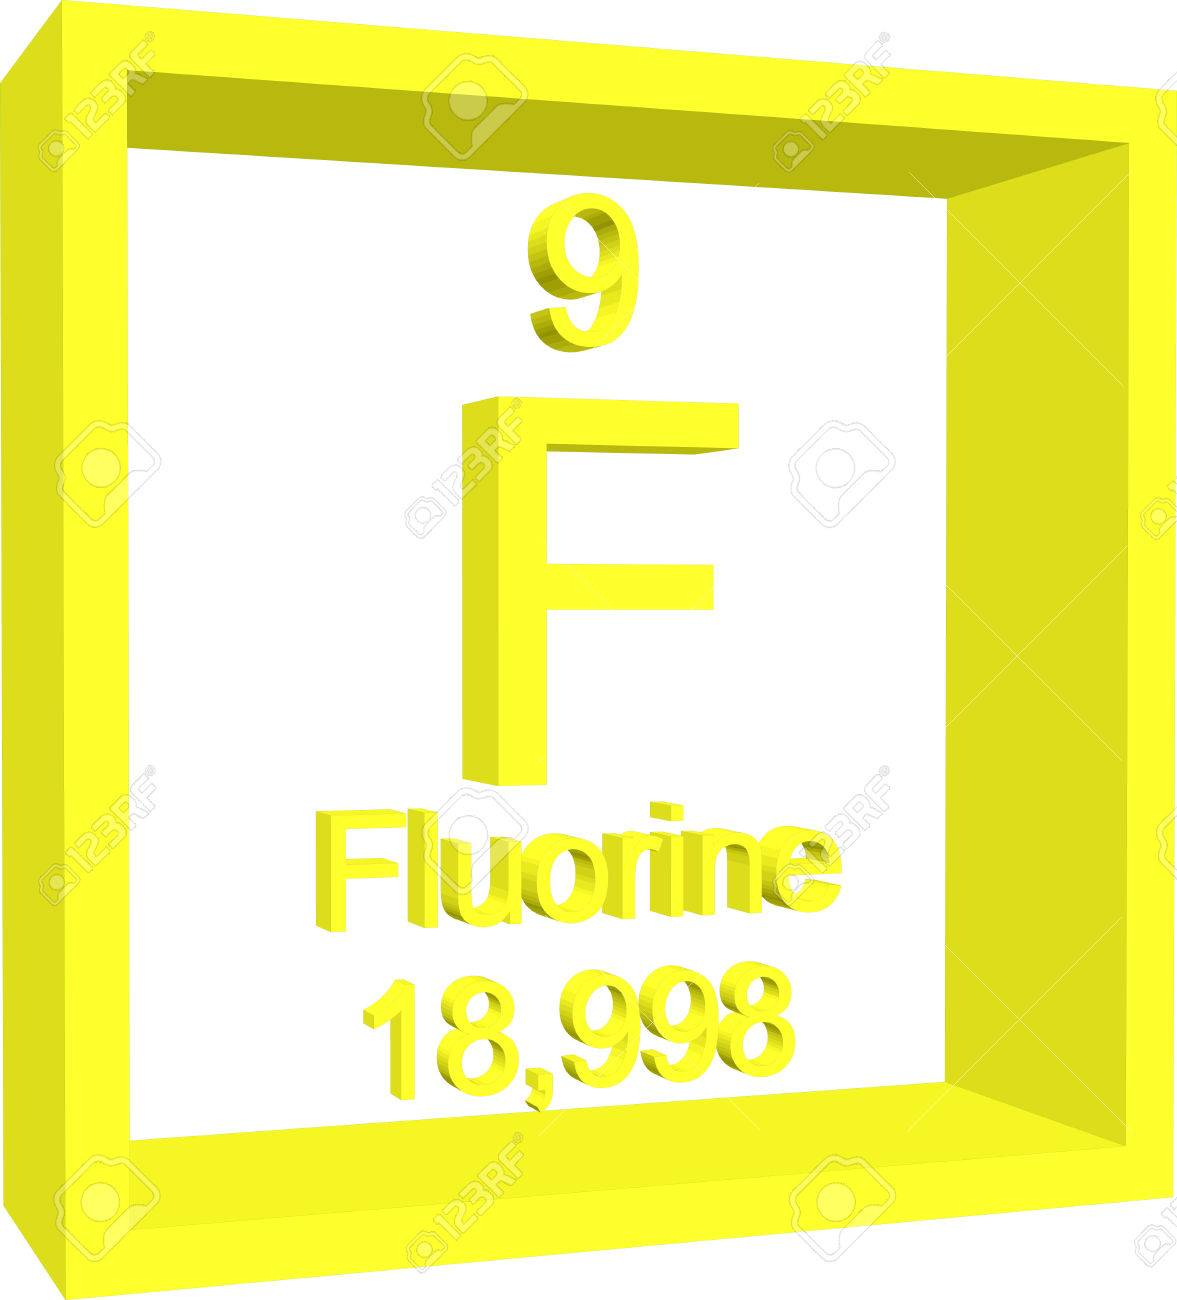 Periodic table of elements fluorine royalty free cliparts vectors periodic table of elements fluorine stock vector 57970252 urtaz Images